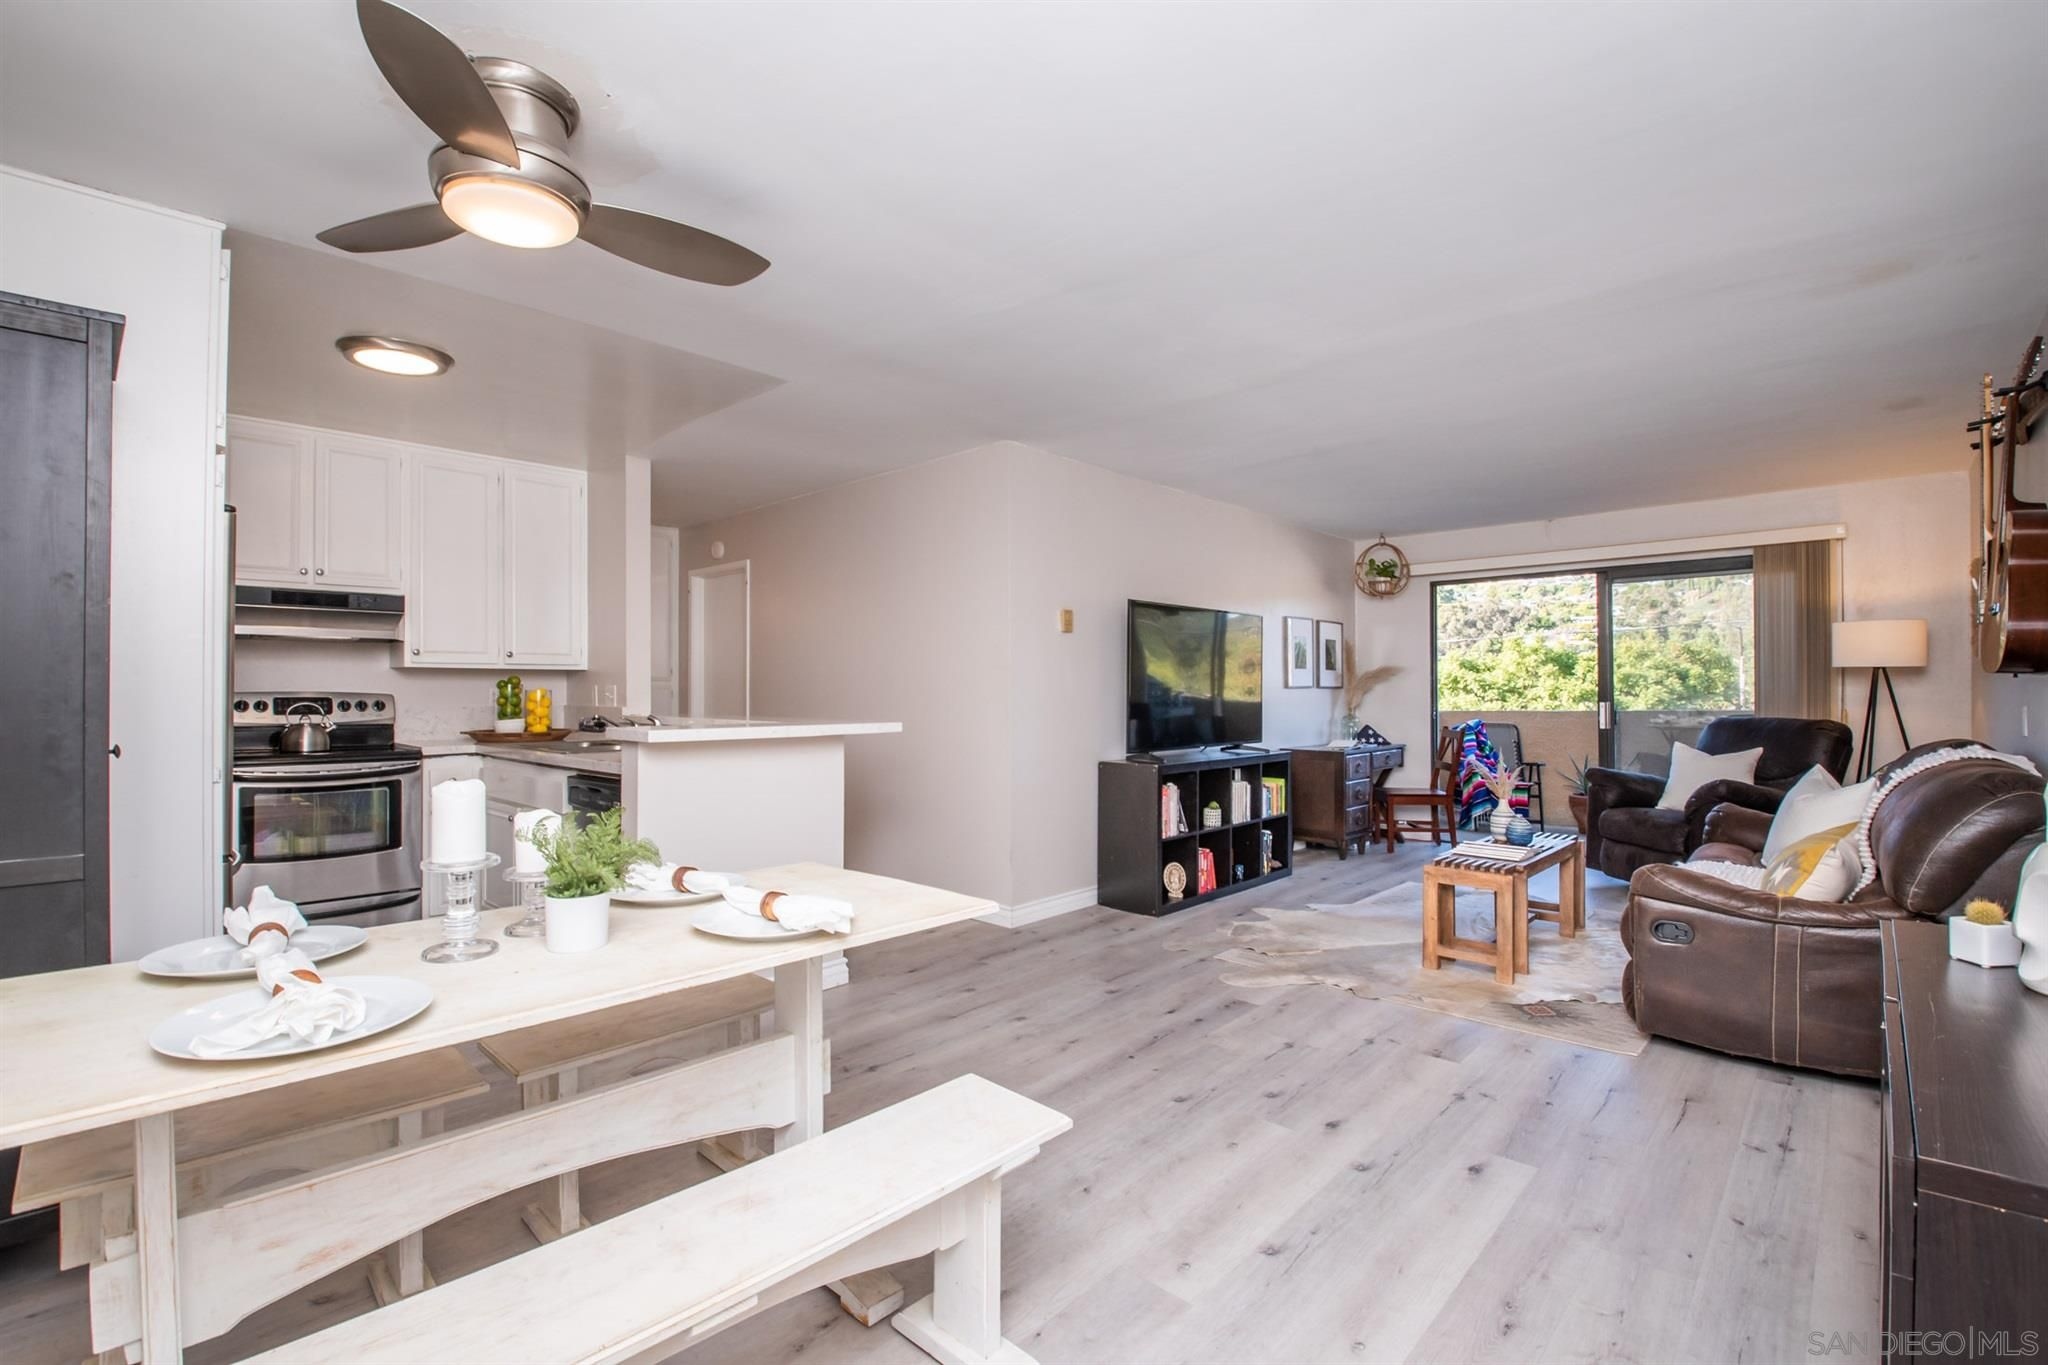 Main Photo: PACIFIC BEACH Condo for sale : 1 bedrooms : 2609 Pico Place #229 in San Diego